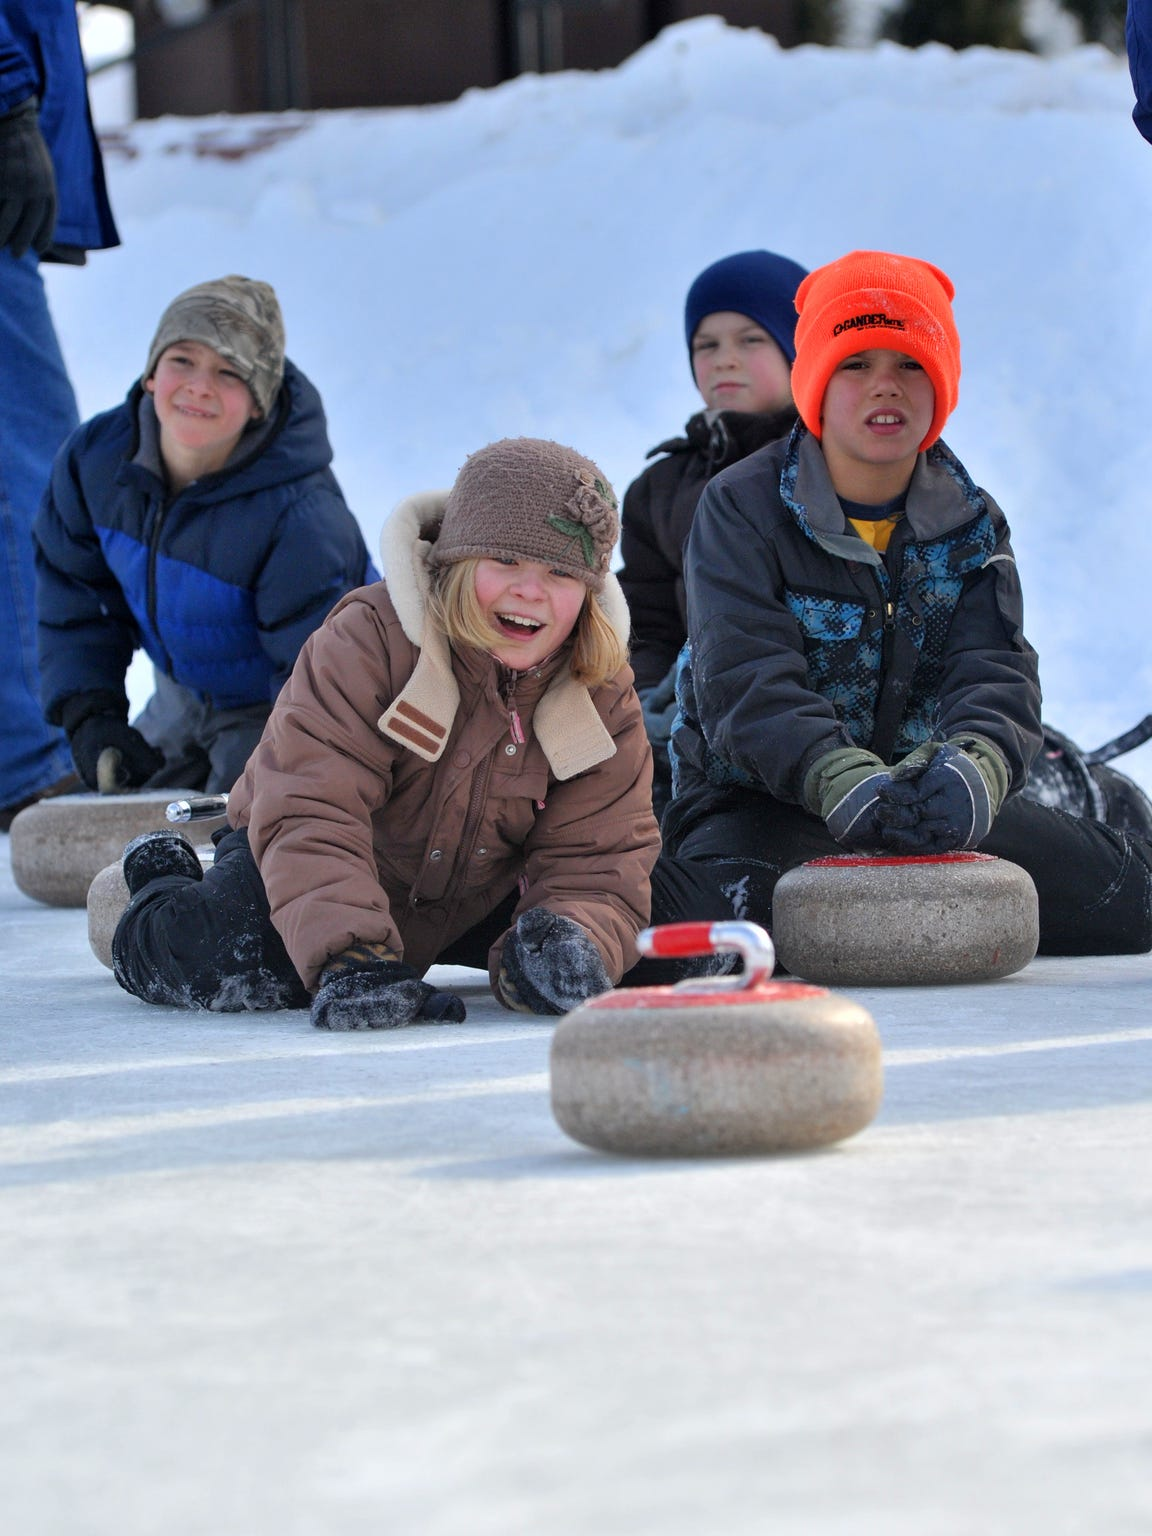 Claire Butalla of Wausau tries curling while her cousin Jake Pease of Marathon looks on at The 400 Block in downtown Wausau at the 2014 Winter Fest.